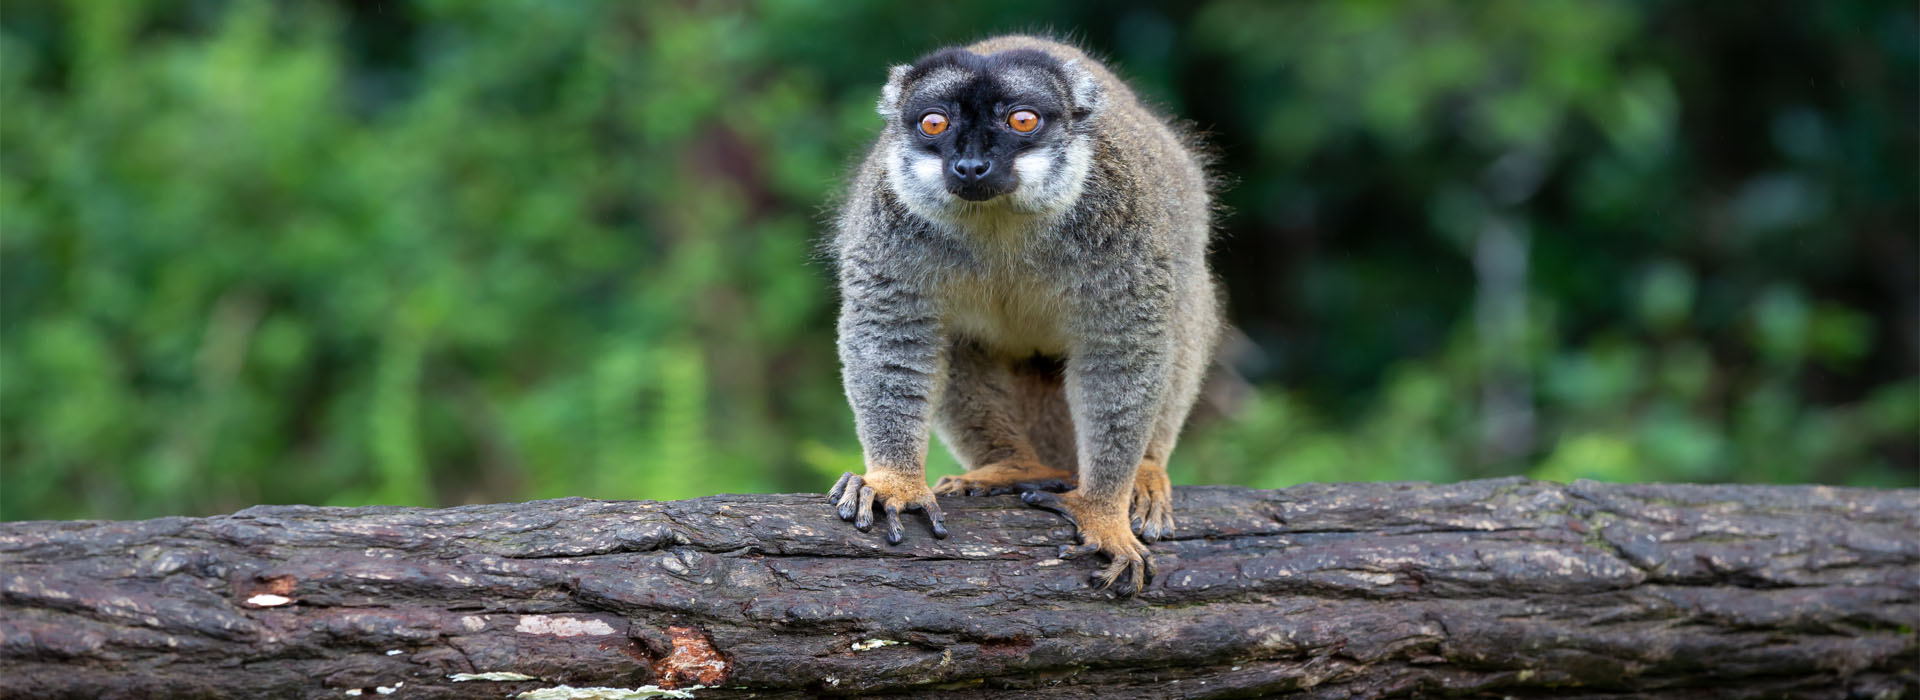 Isalo National Park - Top Travel Destinations in Madagascar - Africa Adventure Specialists